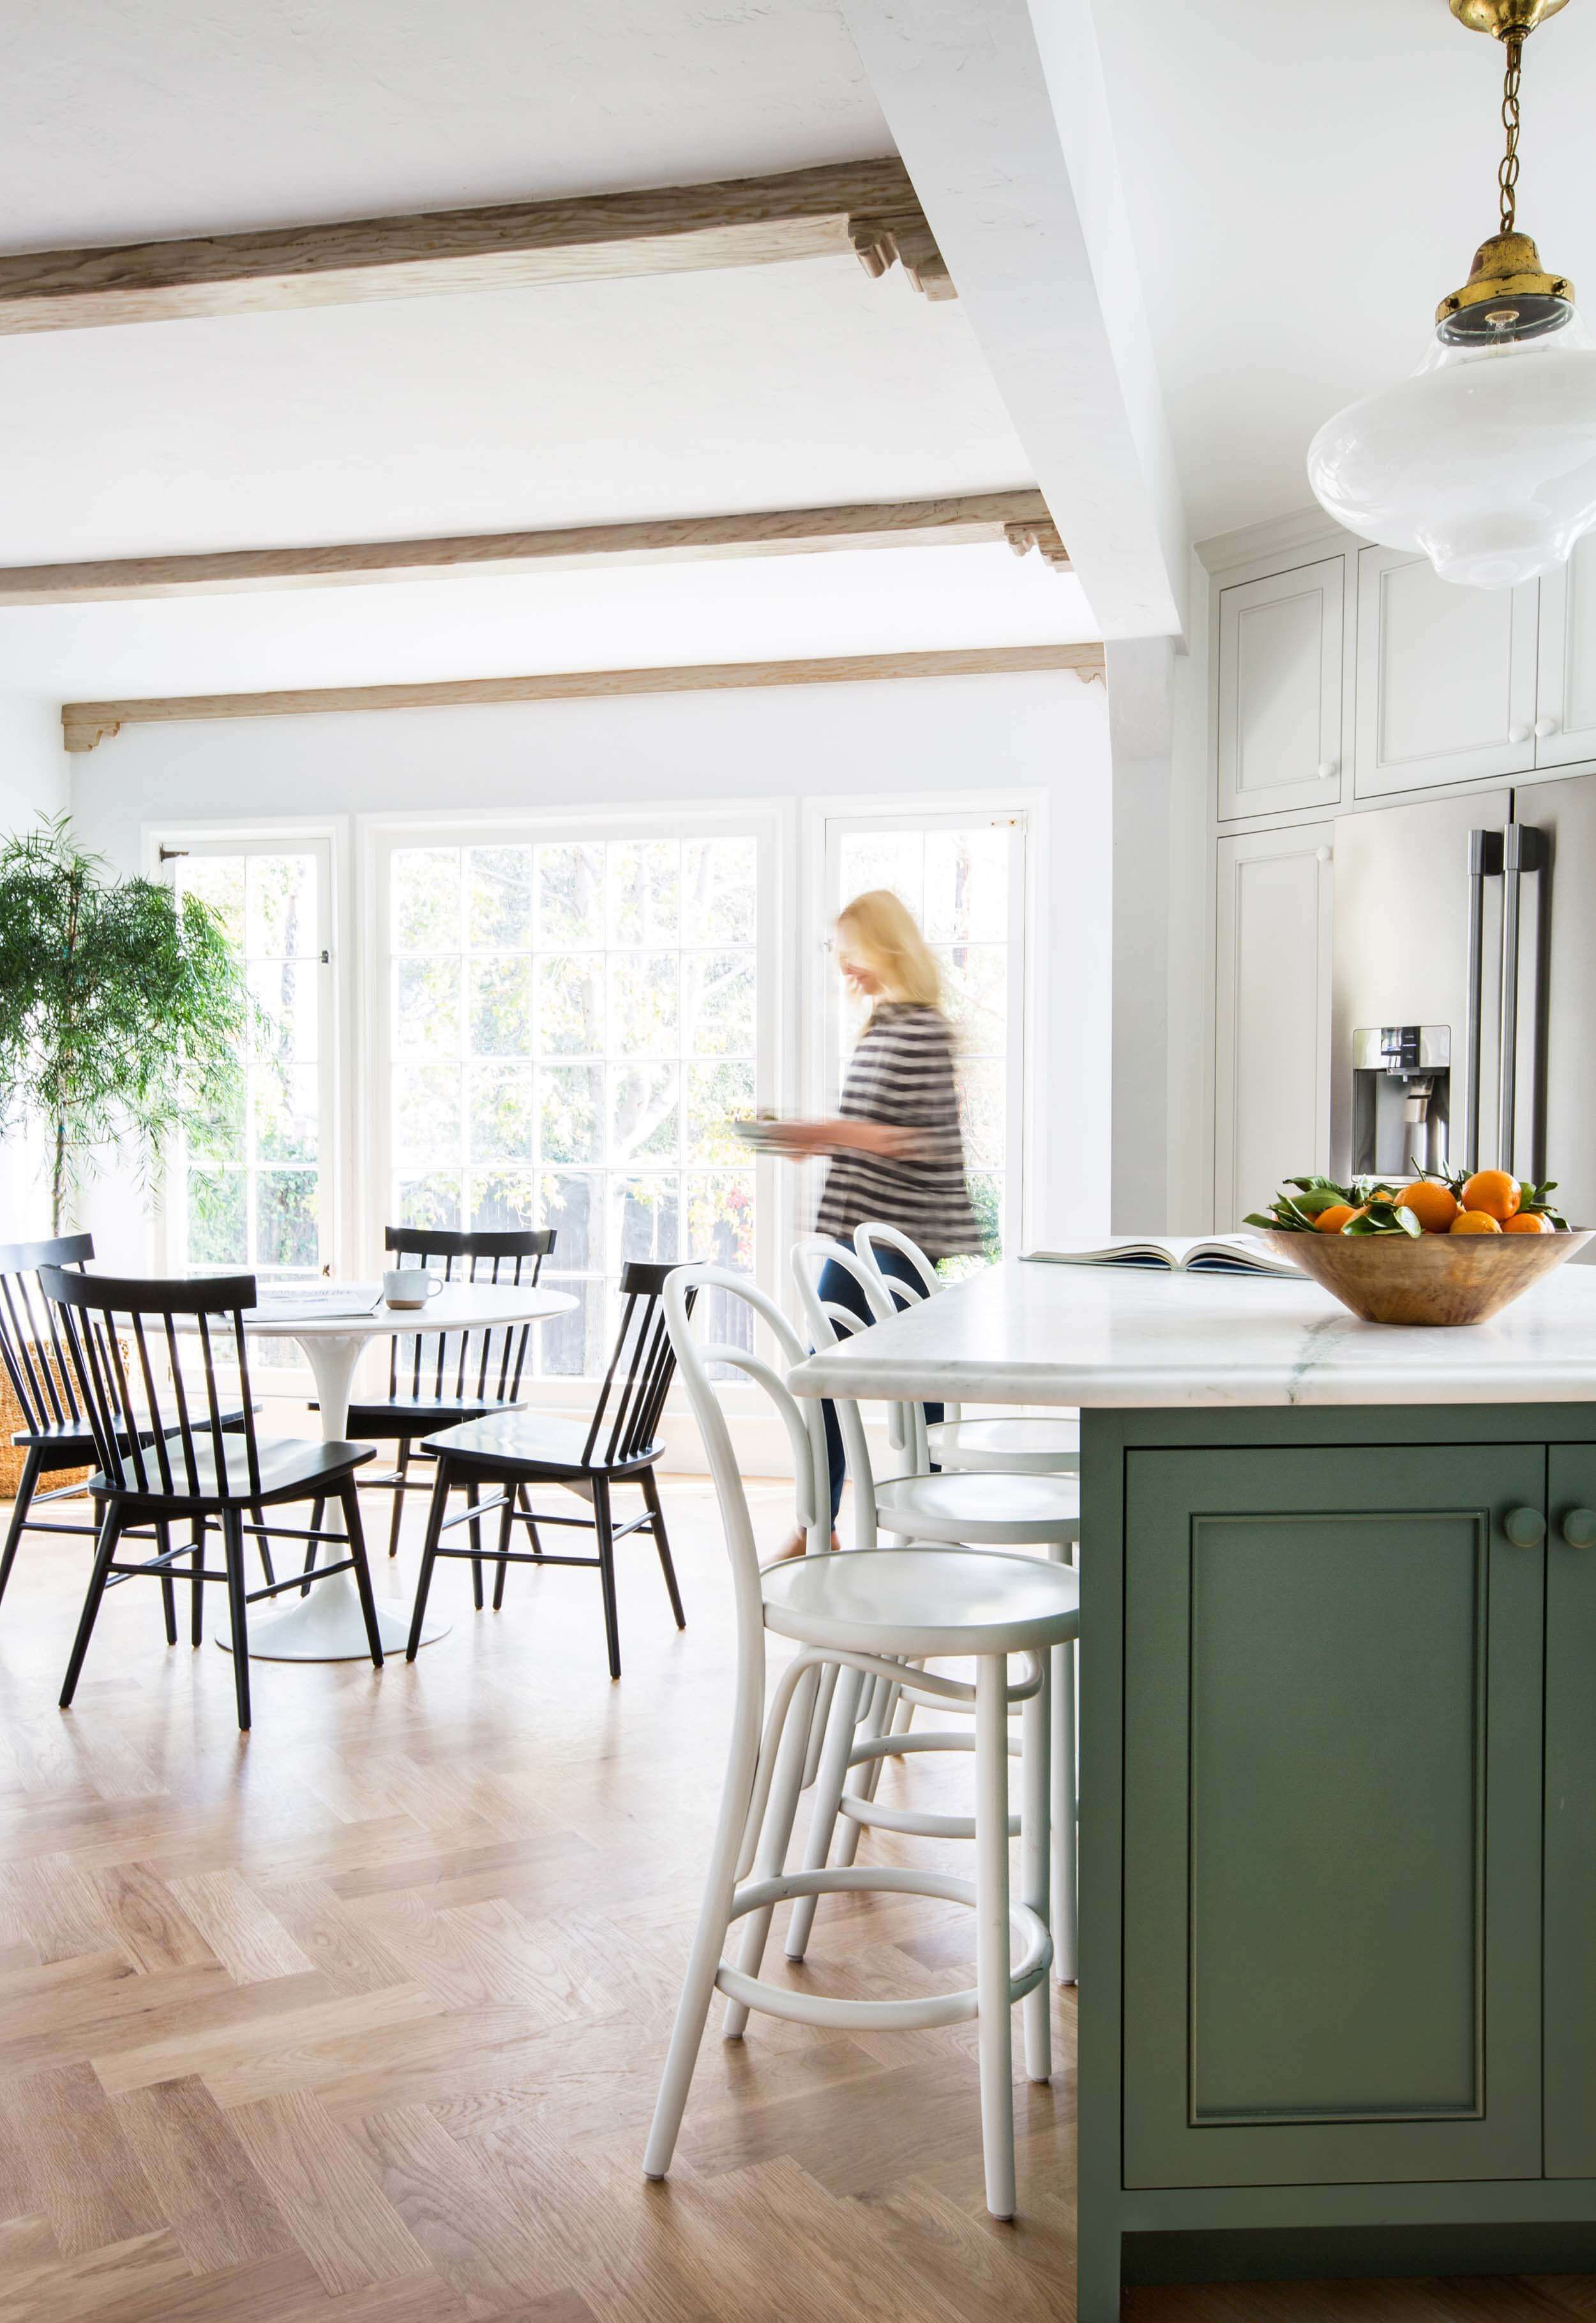 Our Modern English Country Kitchen | dining | English country ...